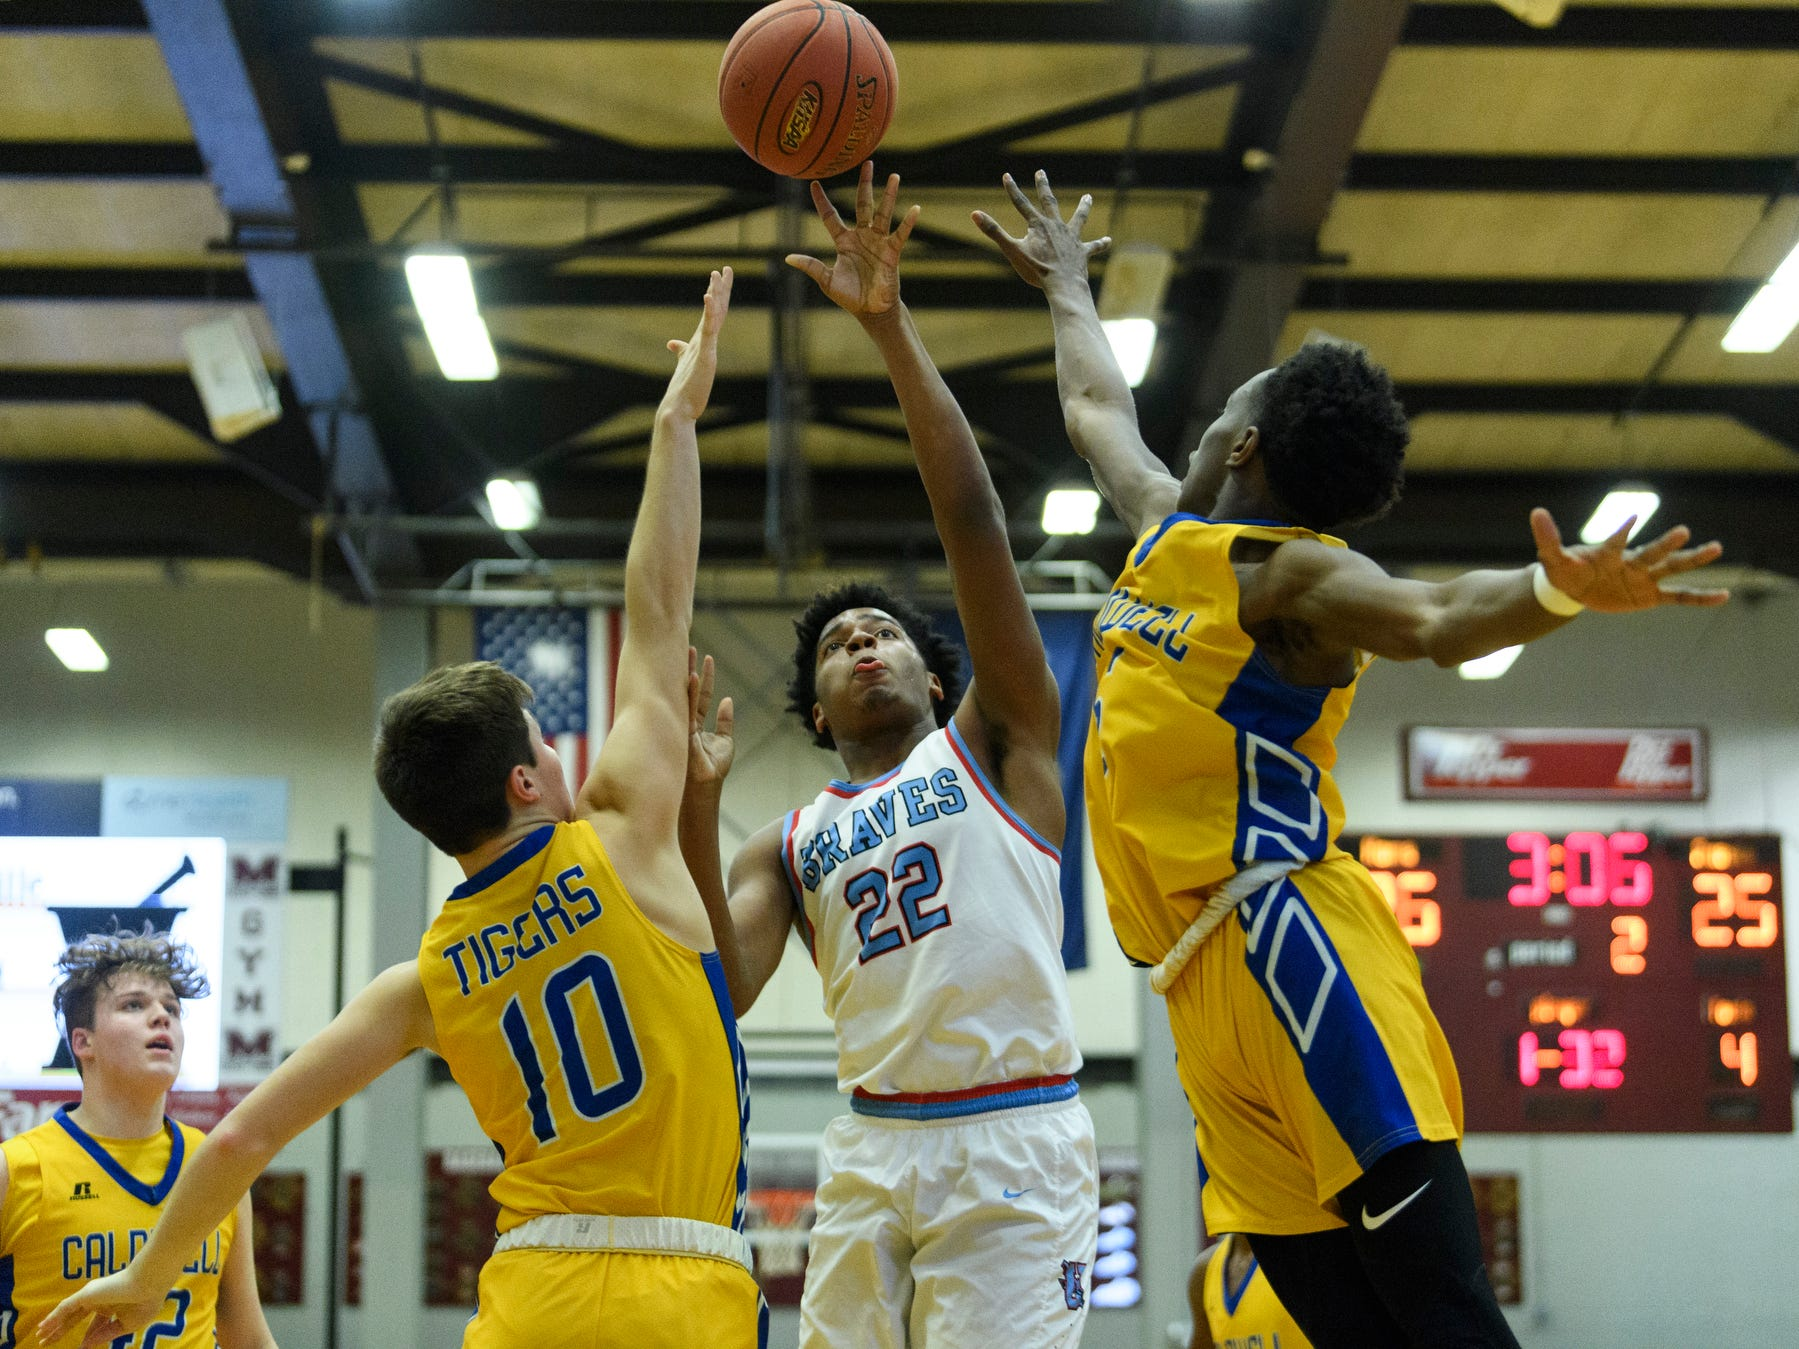 Union County's Iverson King (22) goes for the net as Caldwell County's Tripp Branch (10) and JaMarius D Blaine (5) attempt to block his shot during the Boys Second Region tournament at Madisonville-North Hopkins High School in Madisonville, Ky., Monday, Feb. 25, 2019. The Tigers defeated the Braves 67-64 to advance to Friday's second region semifinal against University Heights Academy.